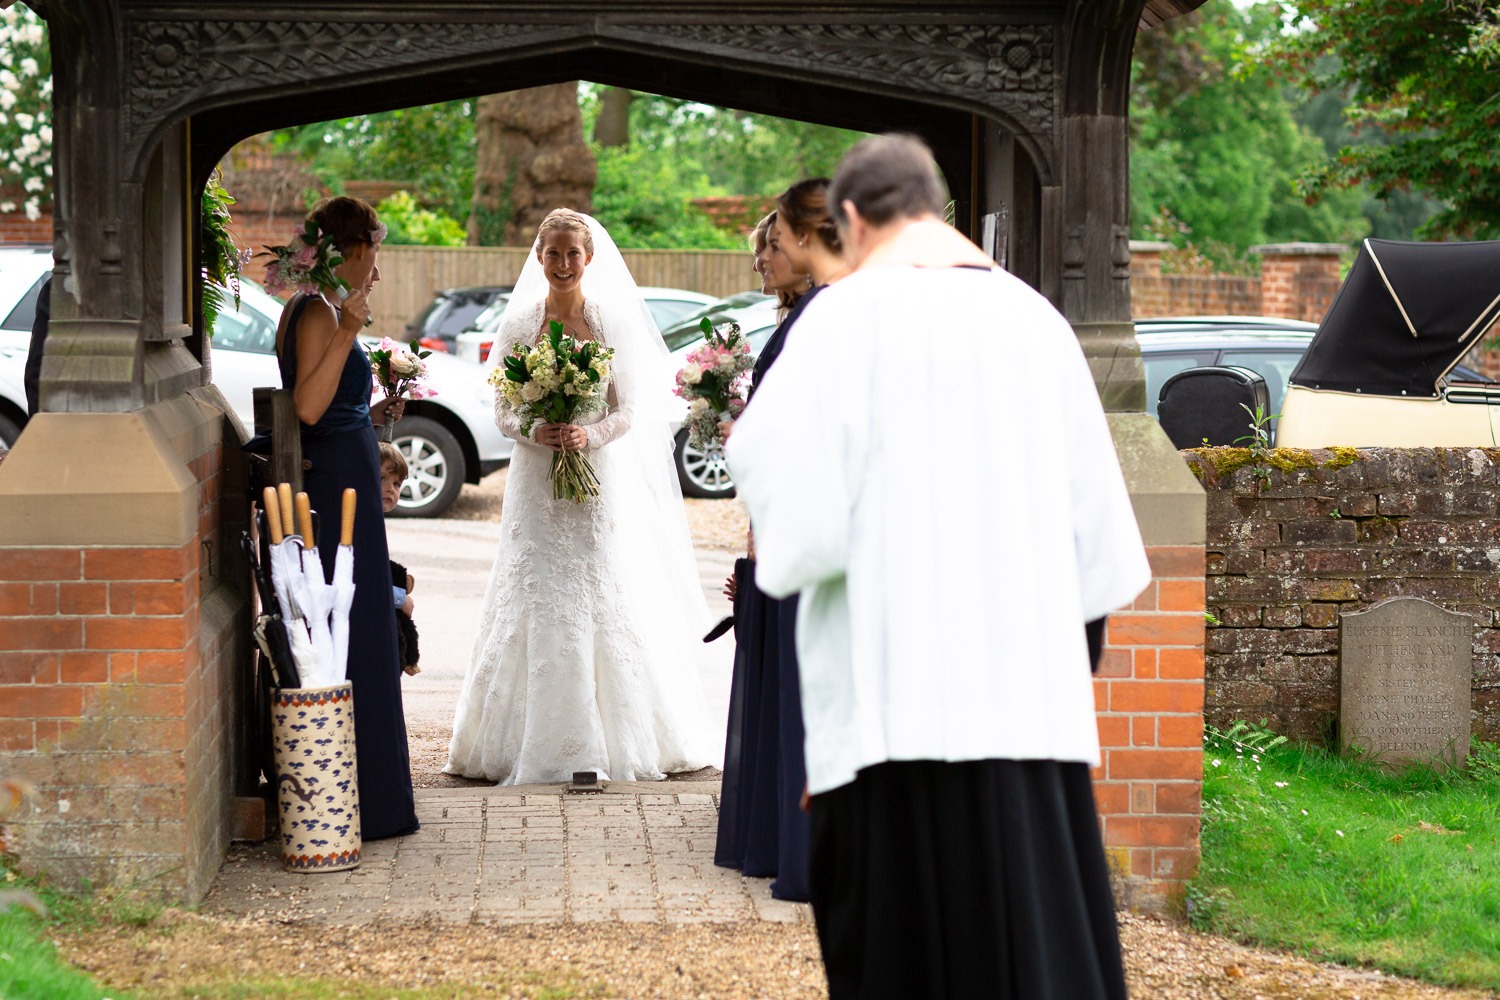 Wedding photography portfolio bridal party arriving at church